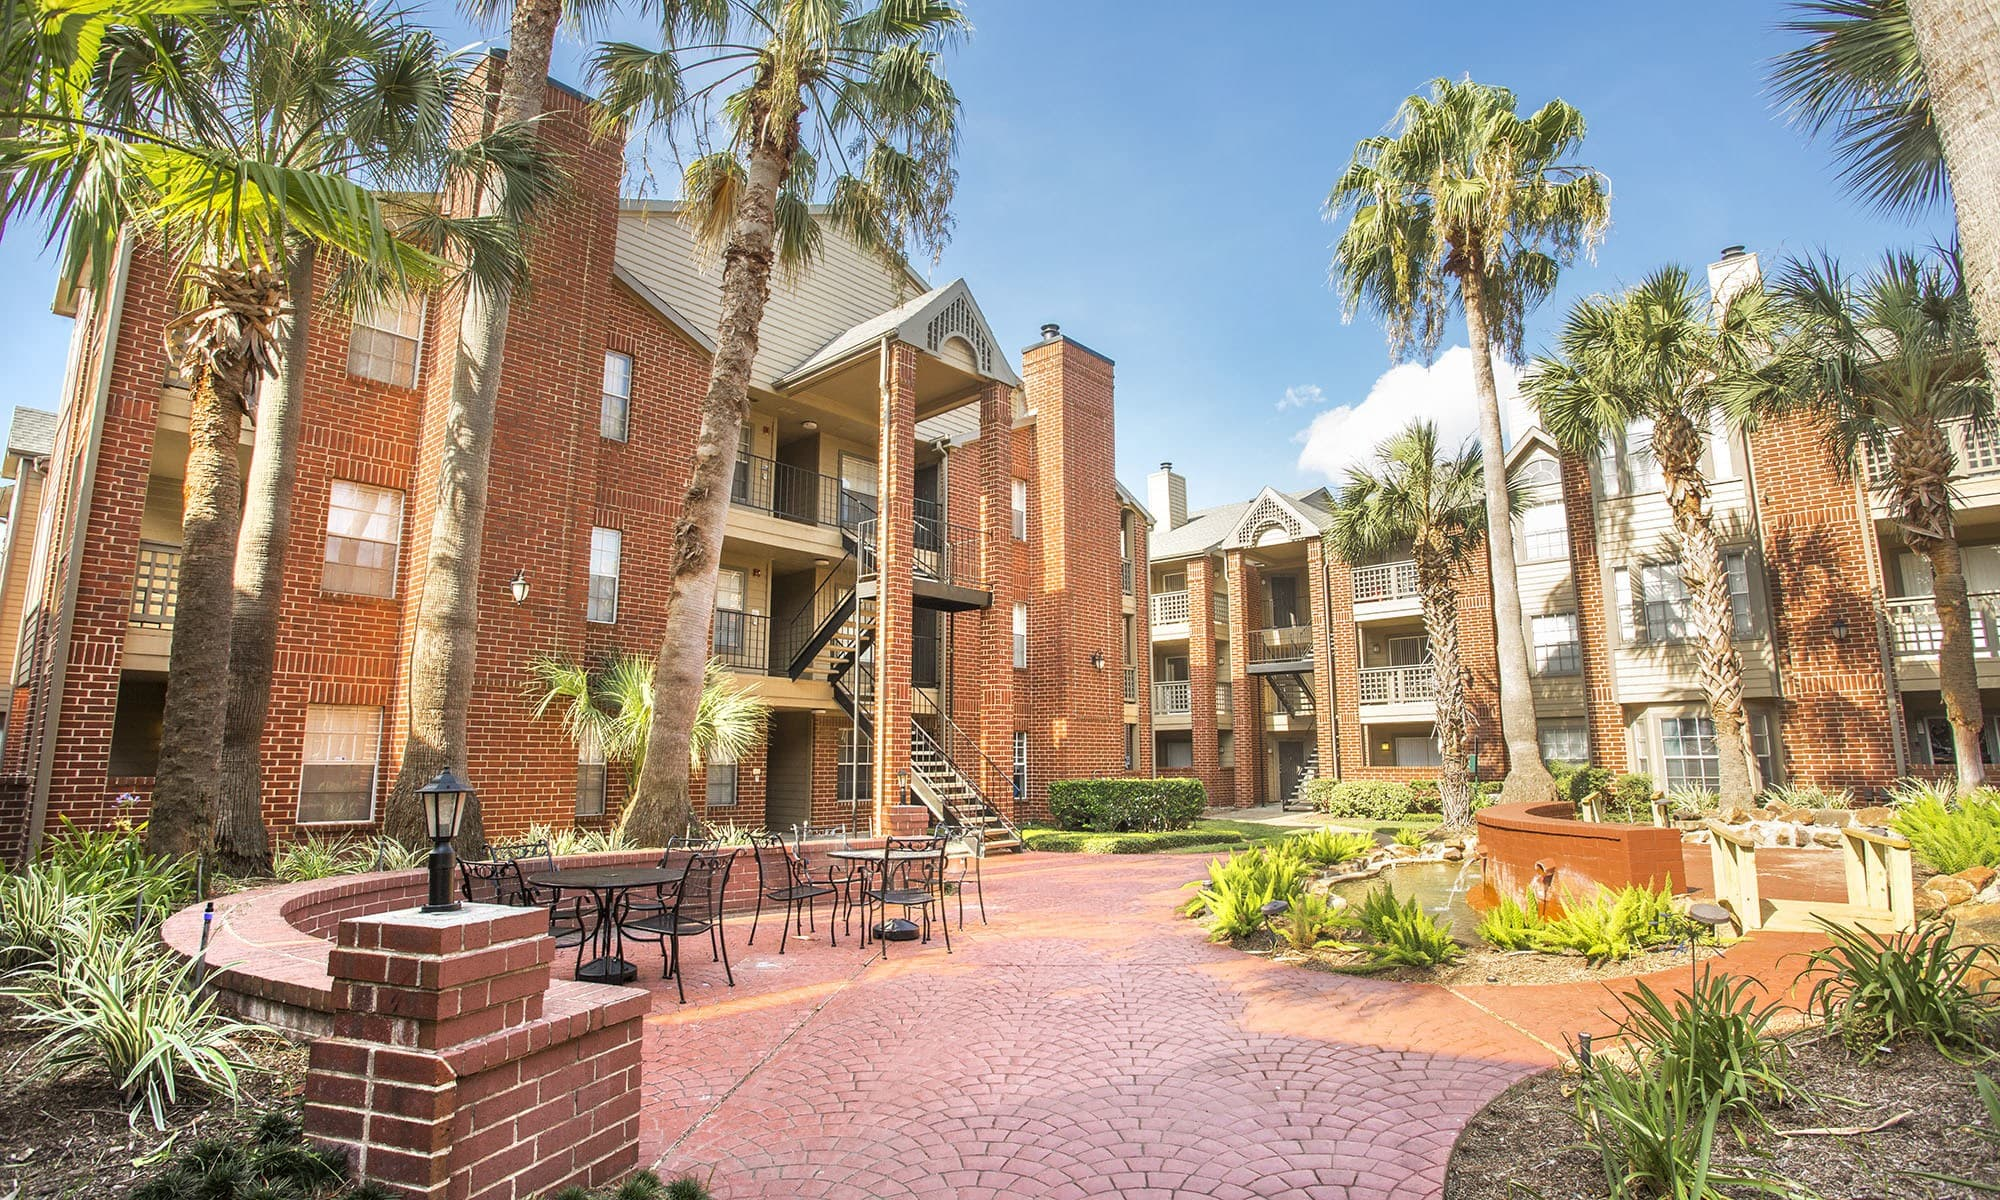 Houston, TX Apartments near Medical Center | Vie at The Medical Center